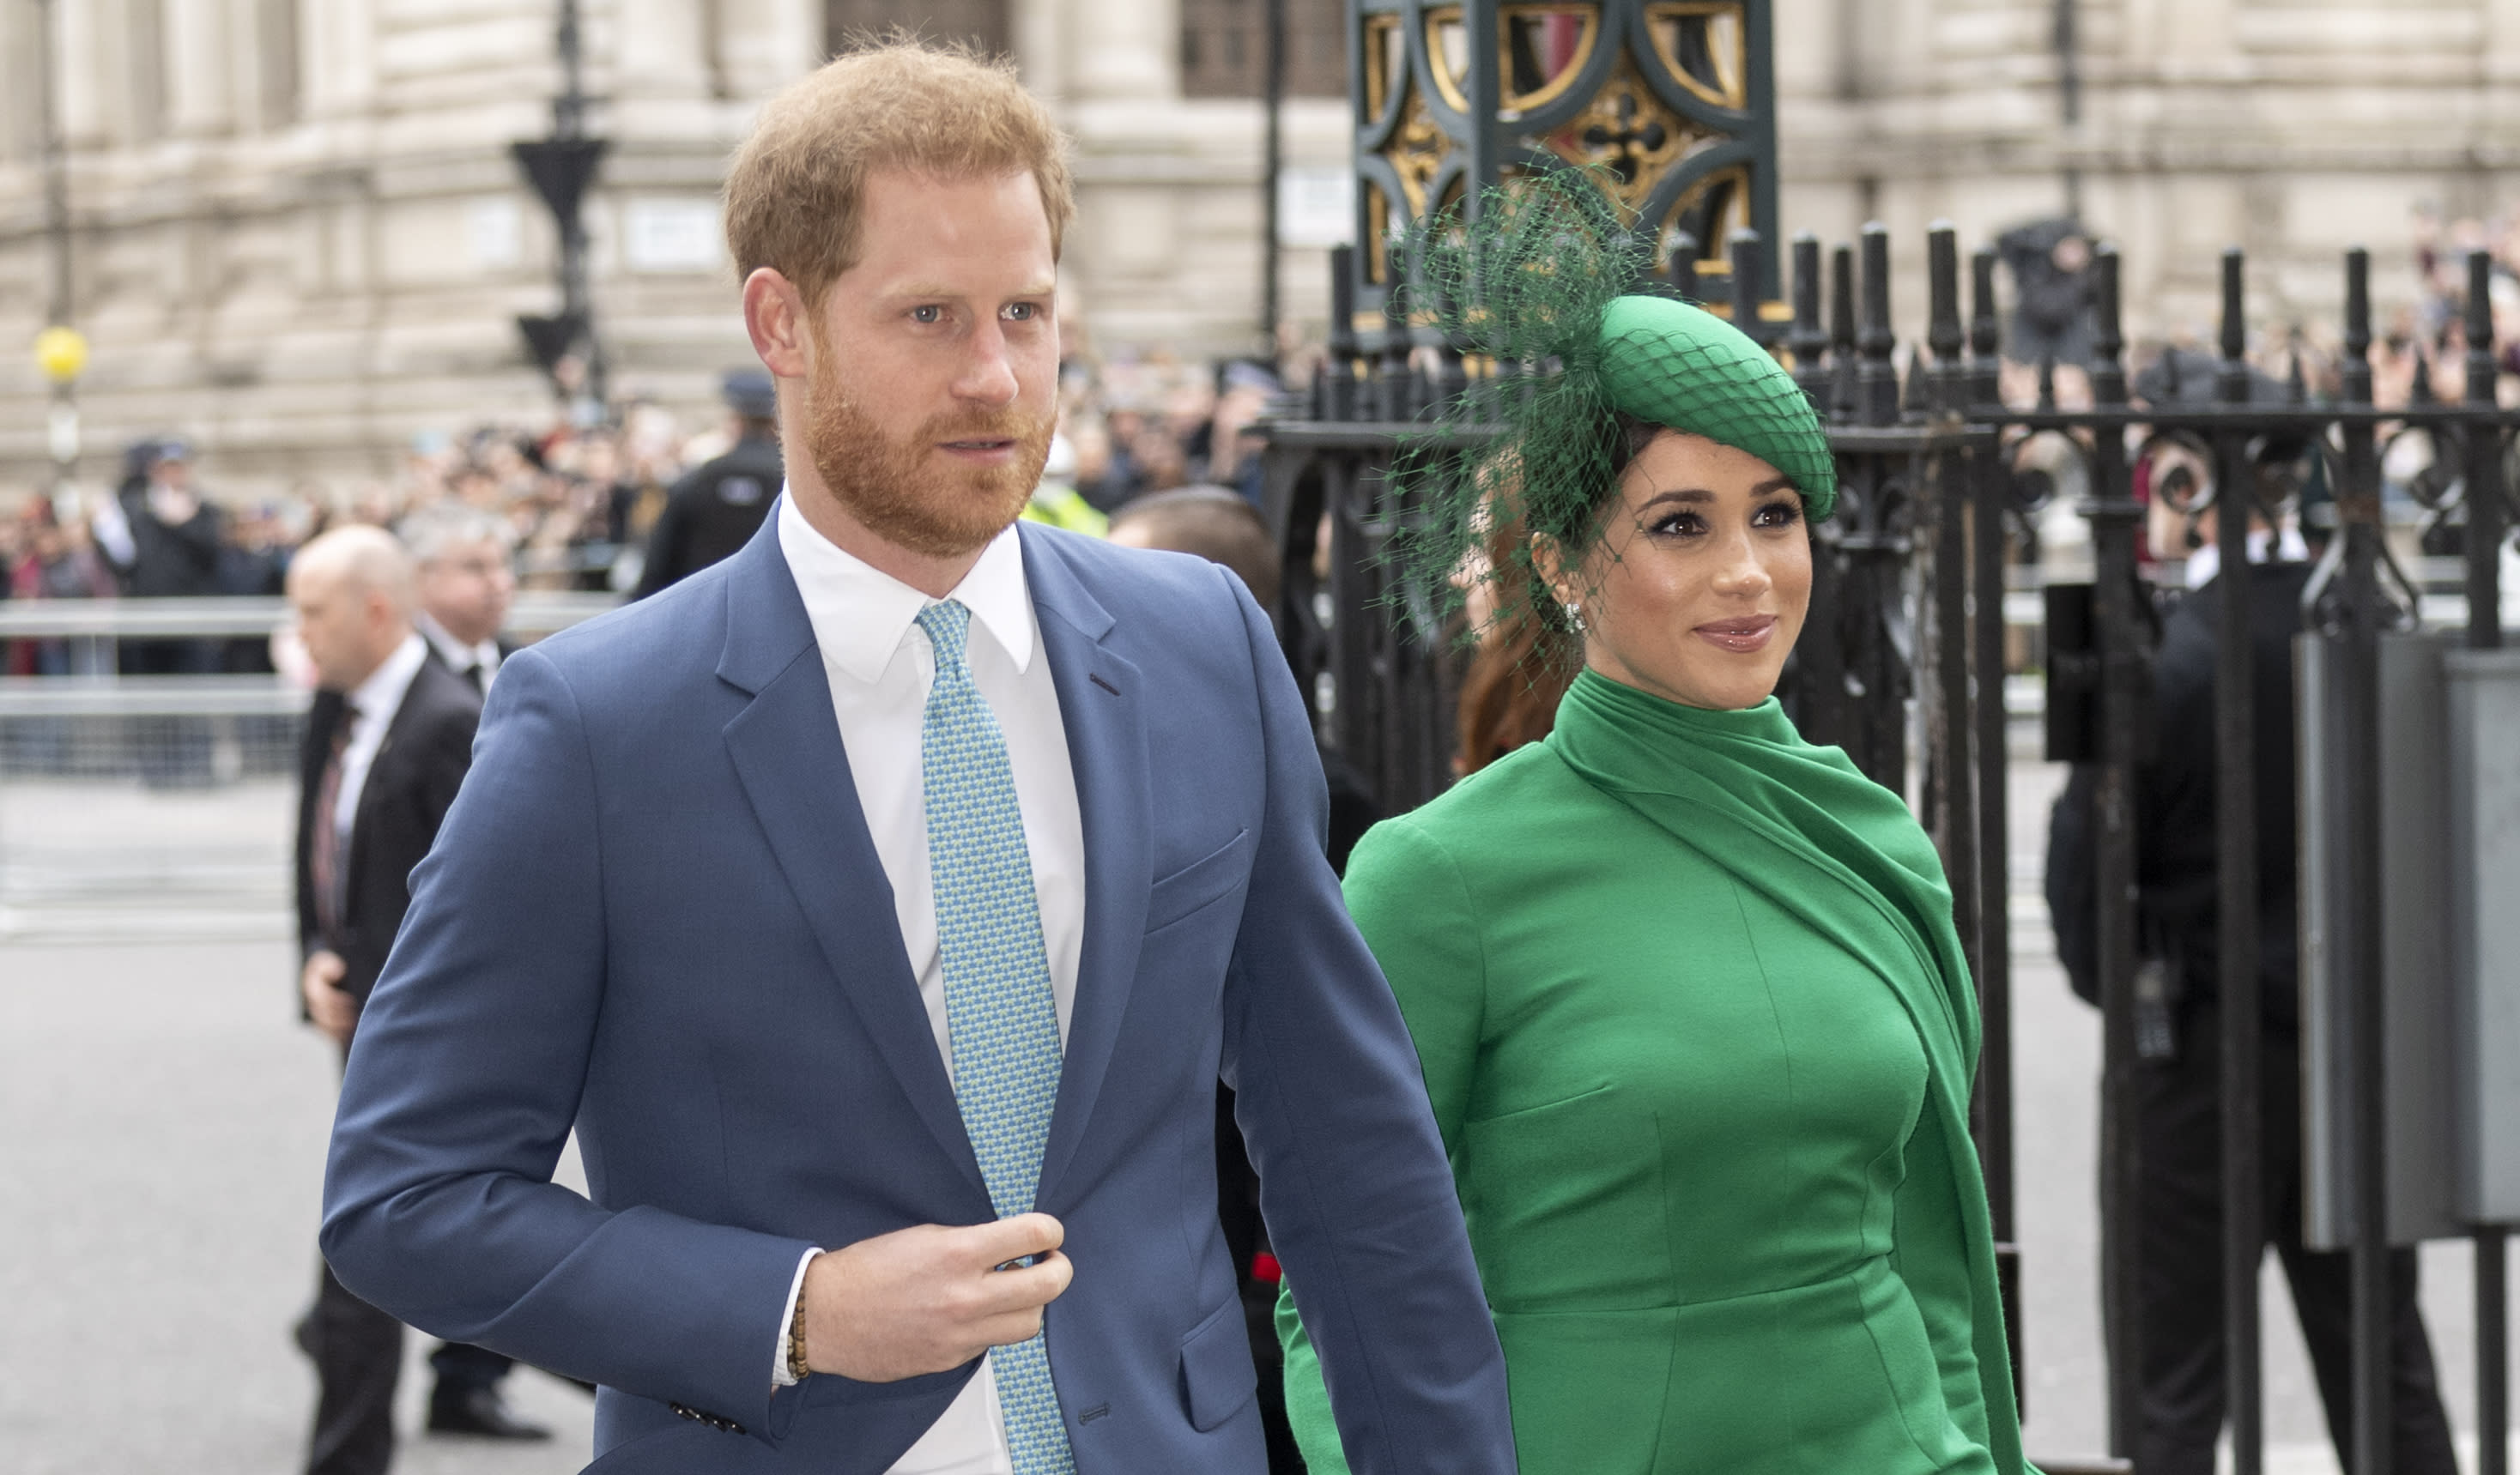 Prince Harry and Meghan Markle's security 'costs £7,000 a day'